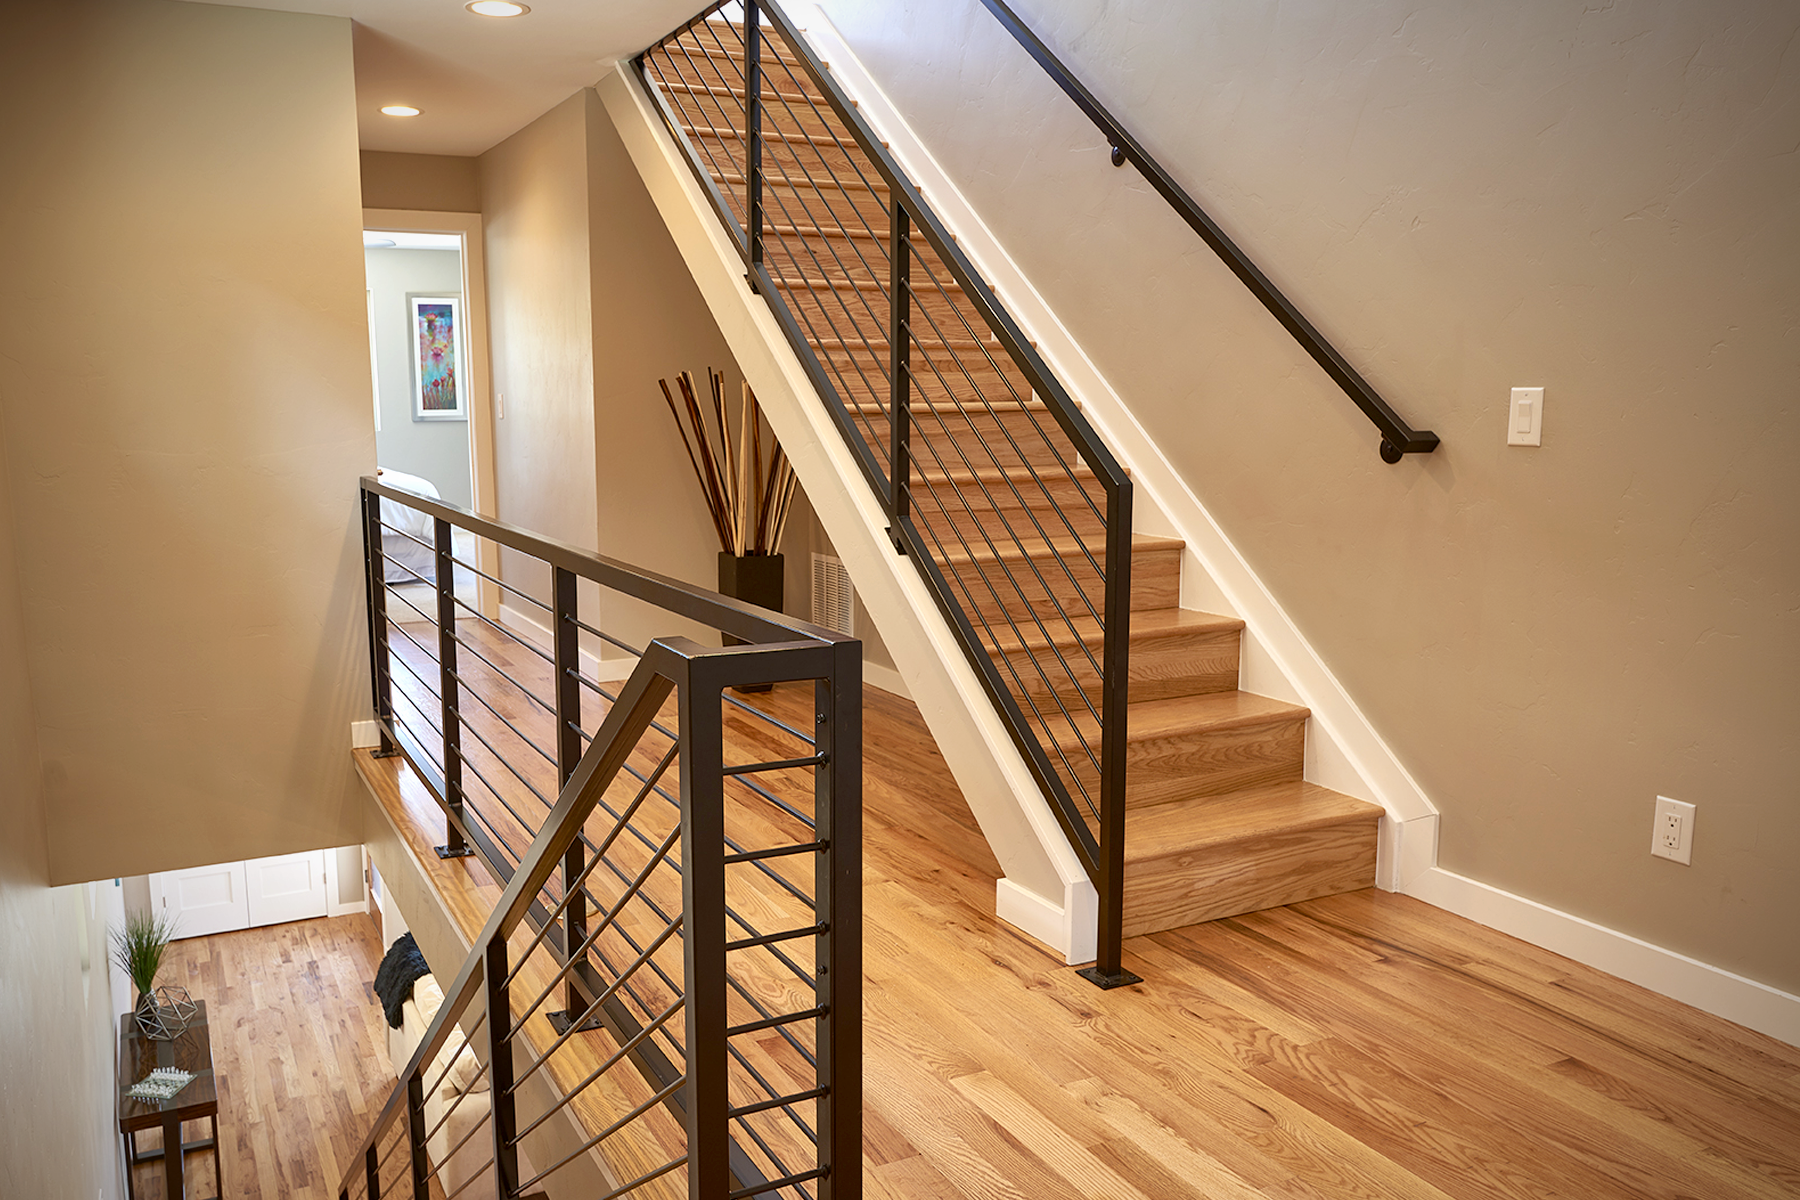 Interiors_Stairs.png